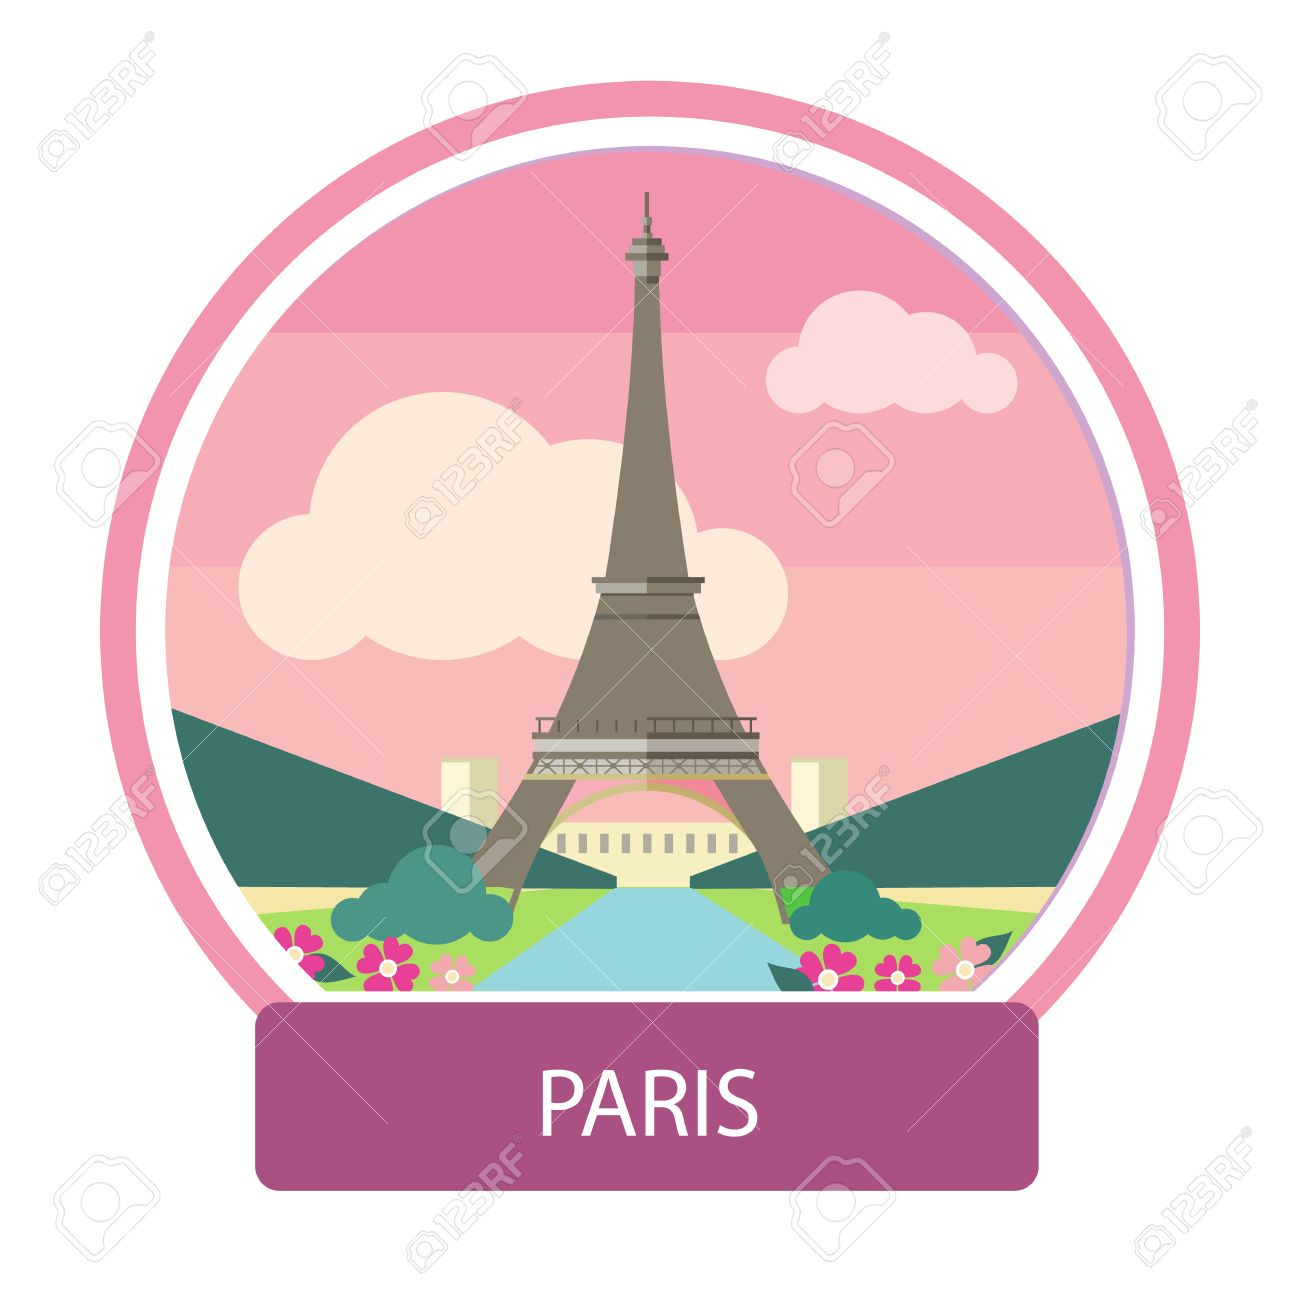 Eiffel Tower Paris France Poster Concept In Cartoon Style Royalty Free Cliparts Vectors And Stock Illustration Image 37403914